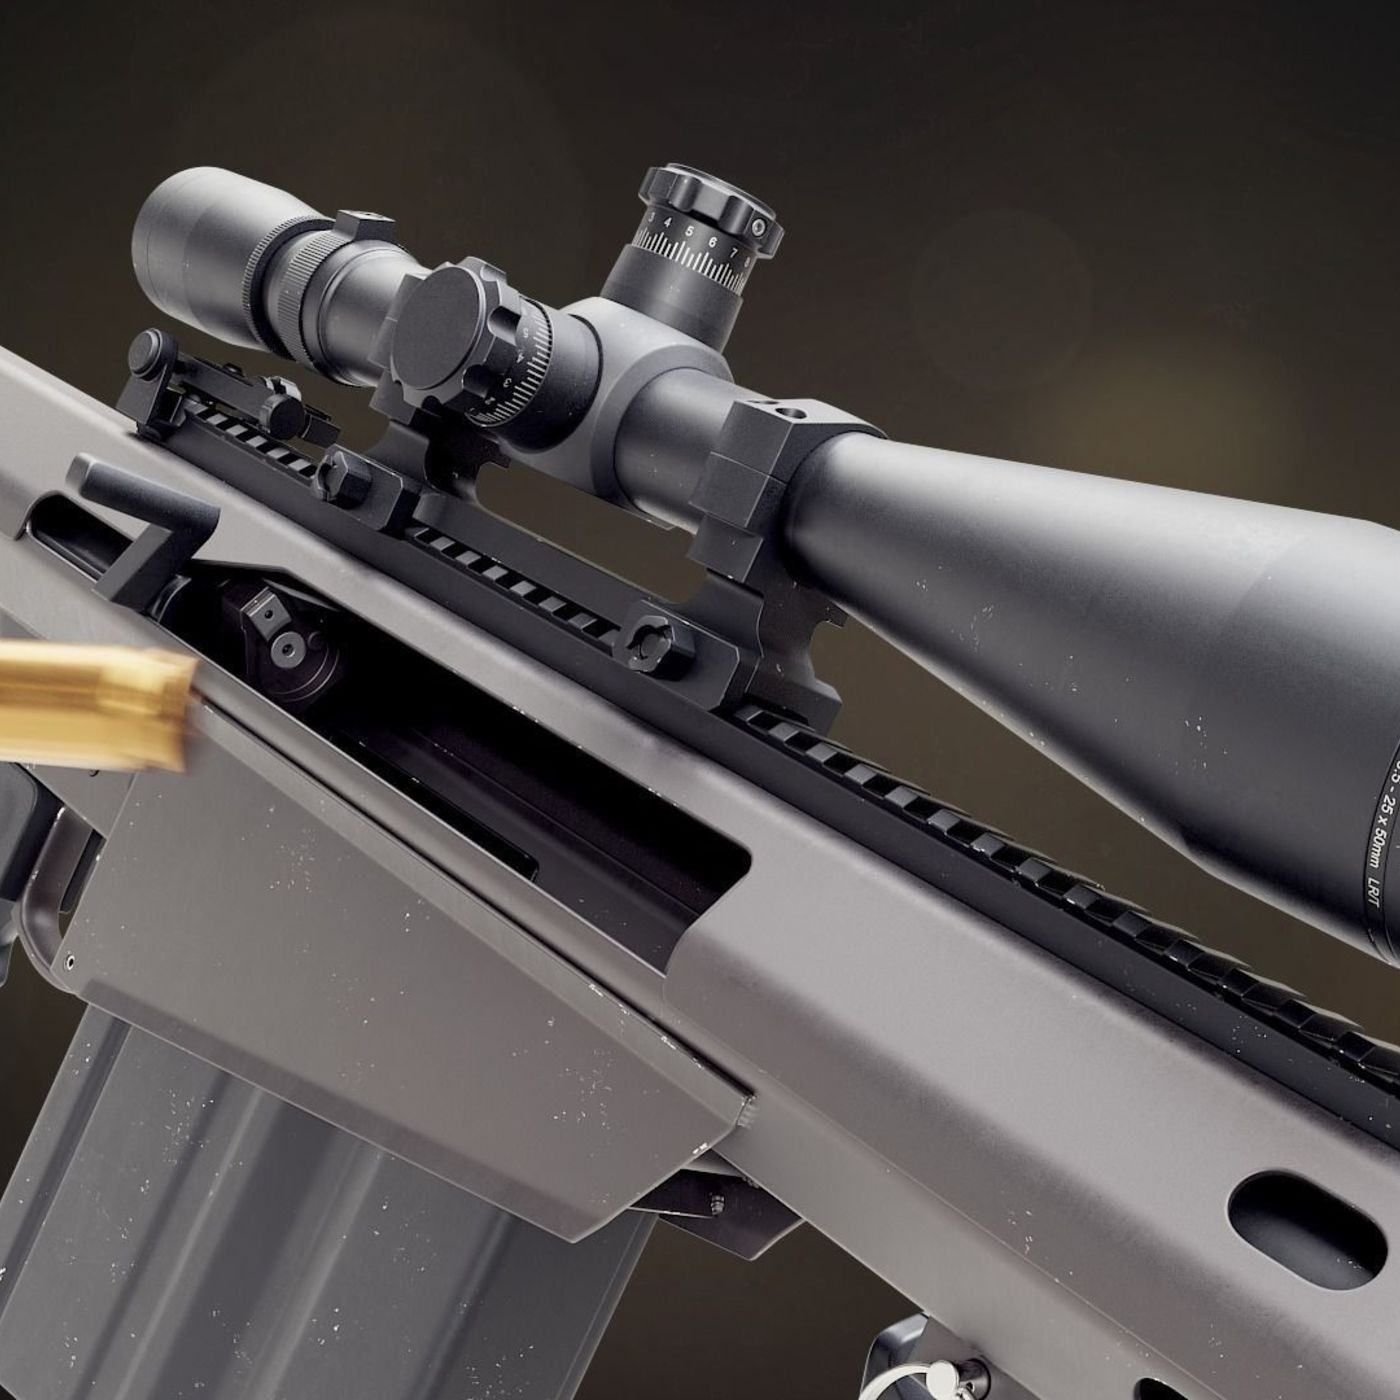 Barret M82A1 sniper rifle